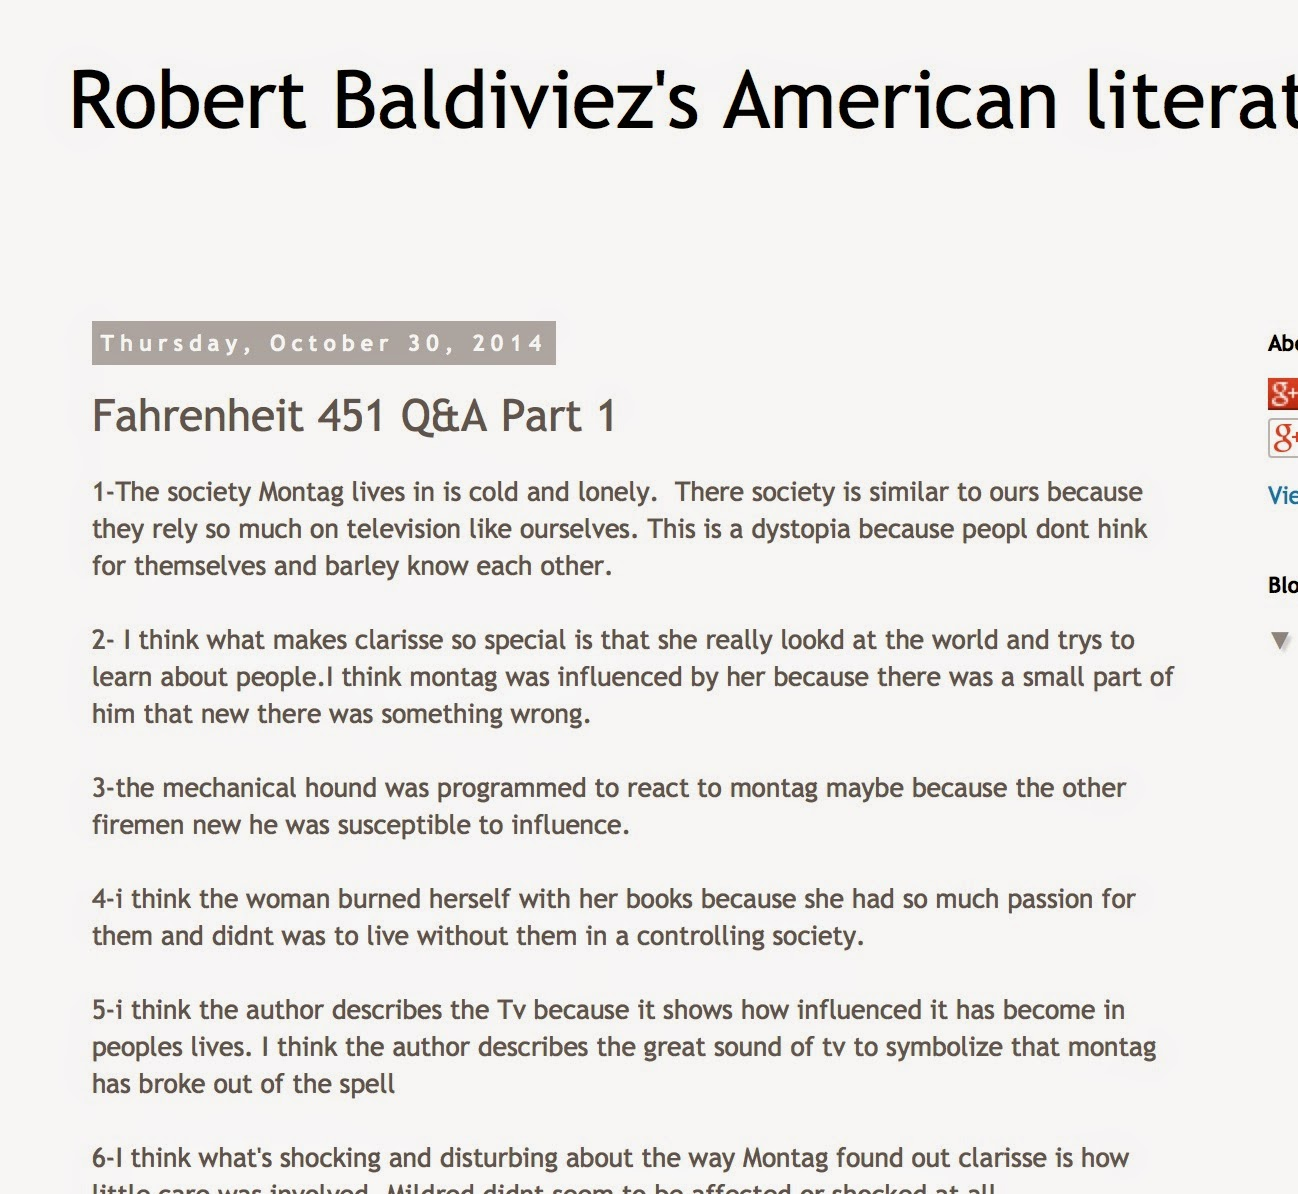 the film fahrenheit 451 essay 4 responses to fahrenheit 451 5 paragraph essay  up on reading your five paragraph the a movie that keep popping in my dead was equilibrium the main.